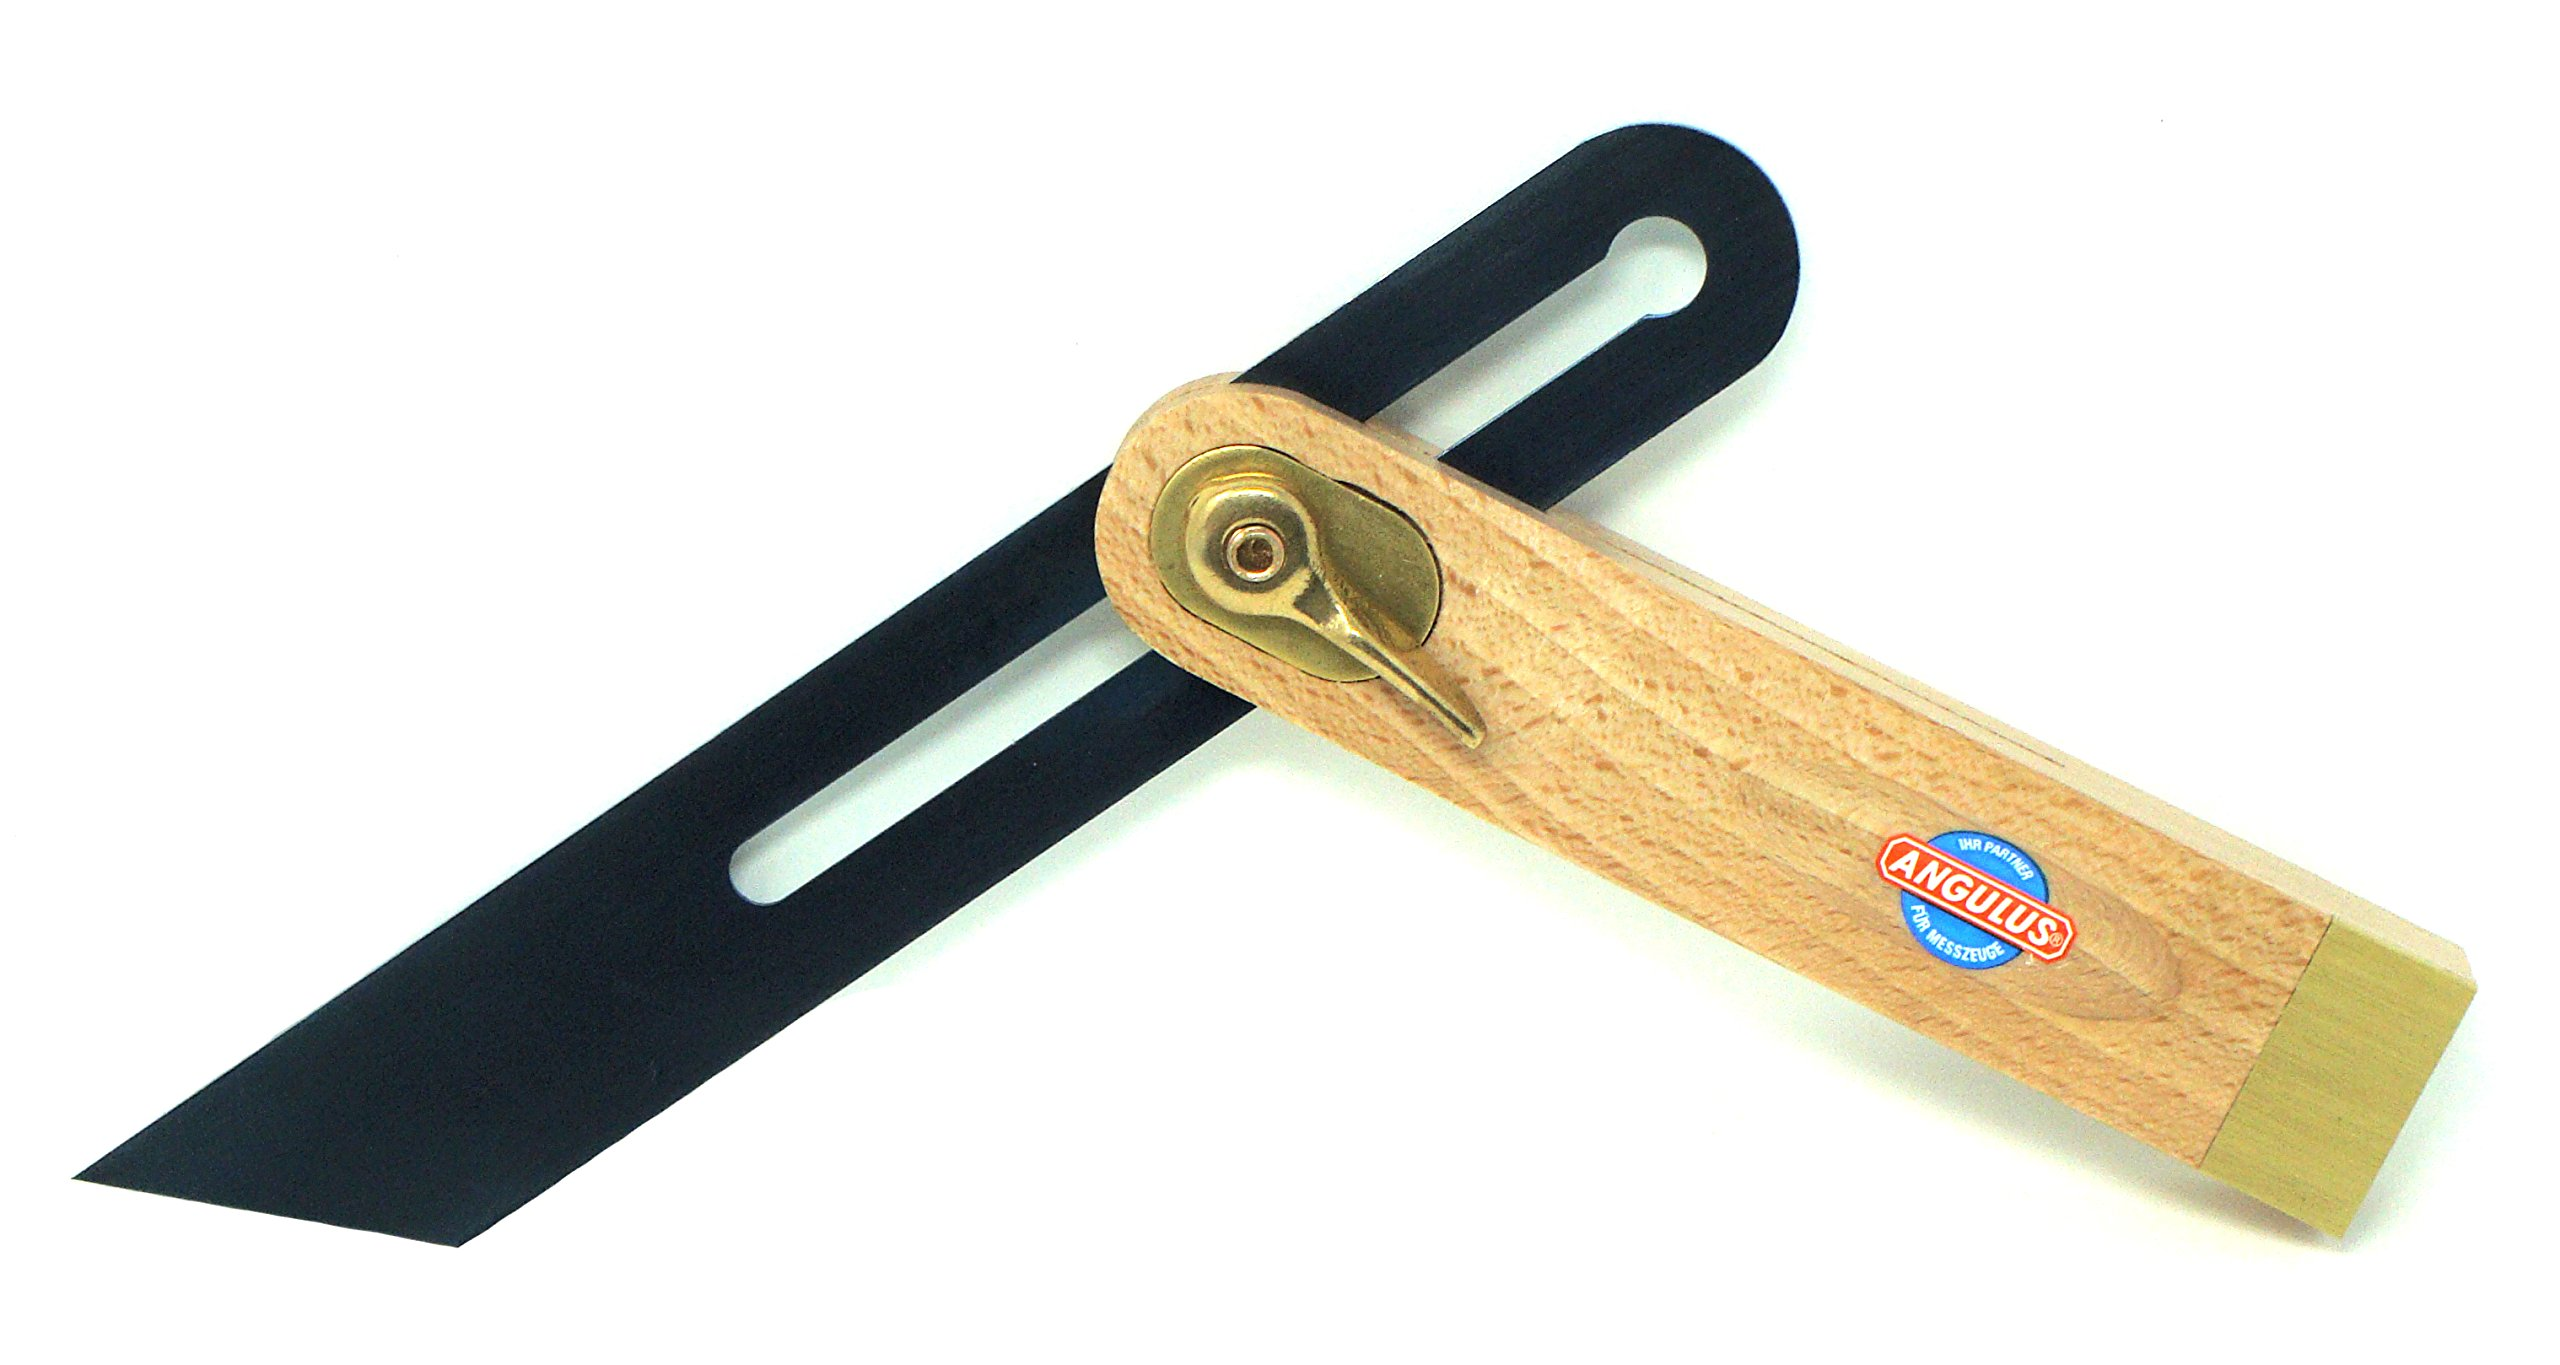 Angulus 8-Inch Sliding T-Bevel with Beech Wood Handle, Hardened Blued Steel Blade and Brass Fittings - Made in Germany